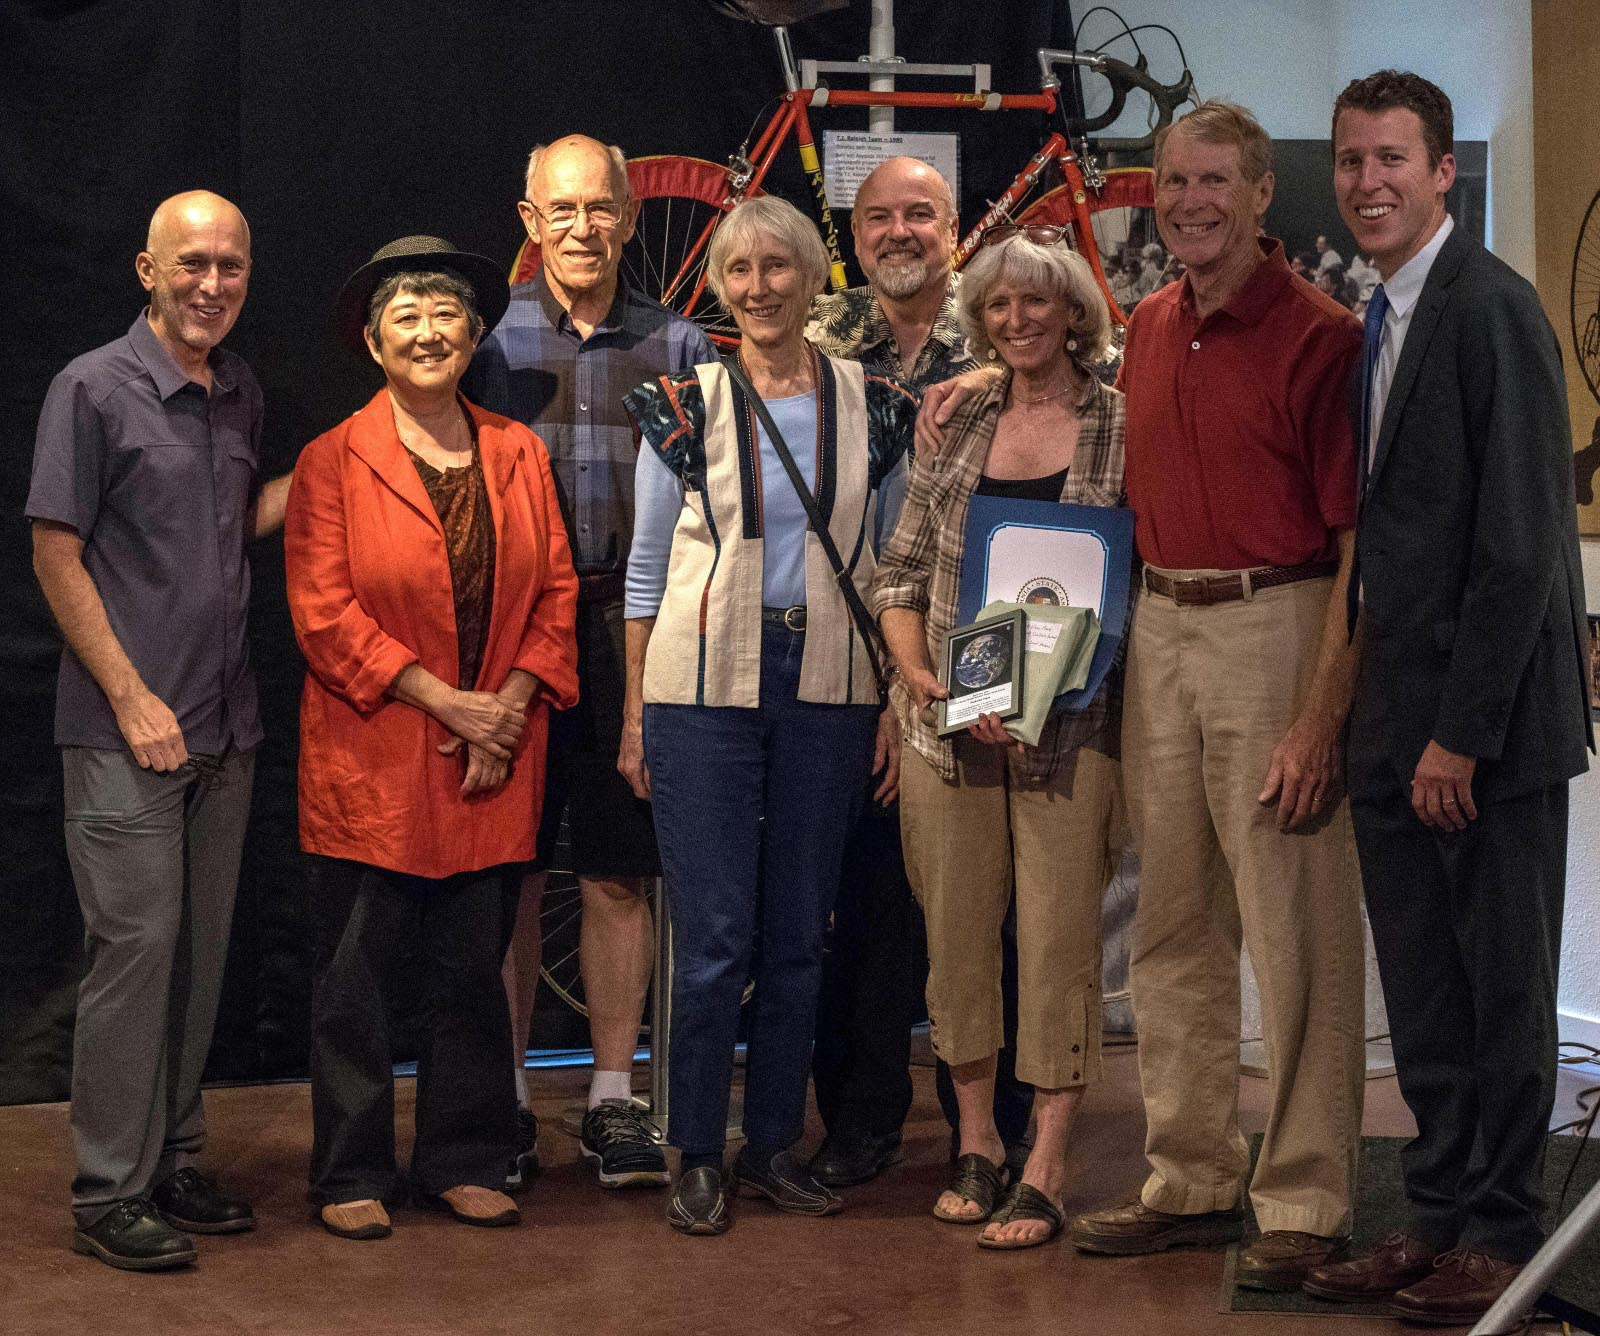 A proud group of Parkview Place residents, including gayle yamada, Jerry Schimke, Kay Schimke, David Hosley, Carol Bourne and Dick Bourne pose with their new Cool Davis Climate Solution Award. Cool Davis recognized Parkview Place for incorporating a creative combination of heating, cooling, and hot water systems that easily exceeded the goal of net-zero performance in its first year. In addition Parkview also deserves the award for its accomplishments in the areas of transportation, water conservation, sustainability, and innovation in senior living.